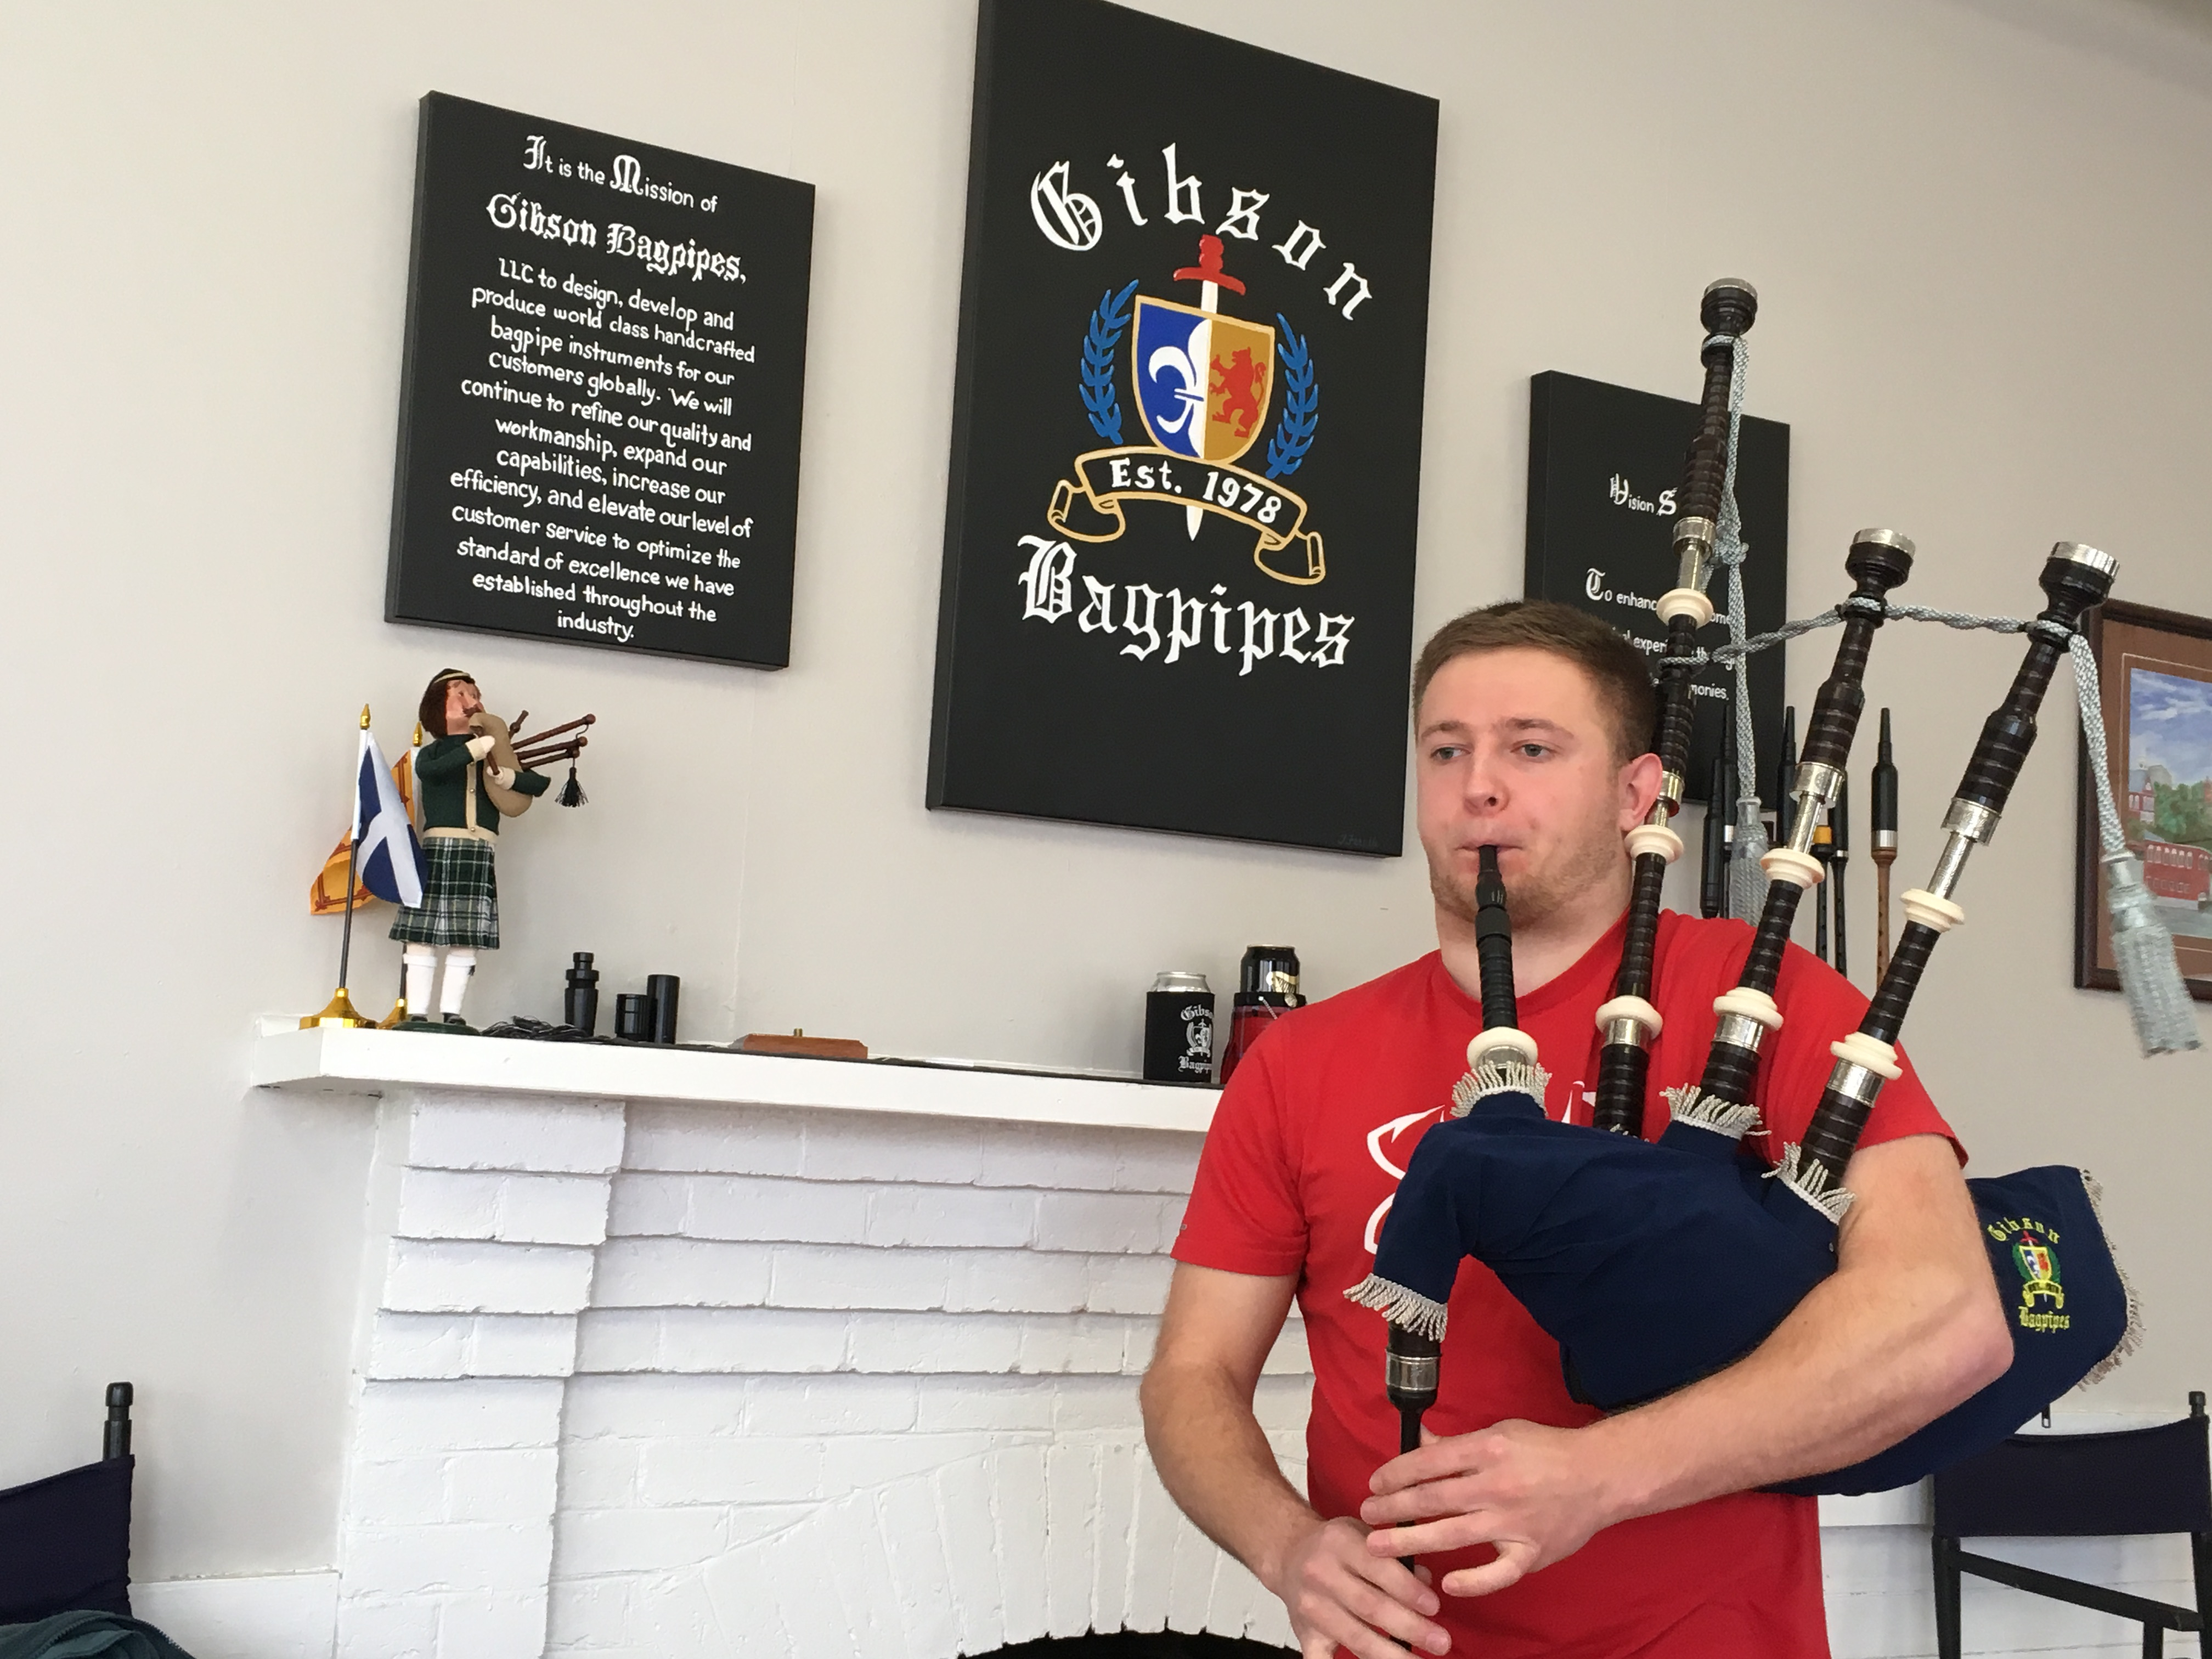 Eryk Bean is in charge of quality control and product development at Gibson Bagpipes